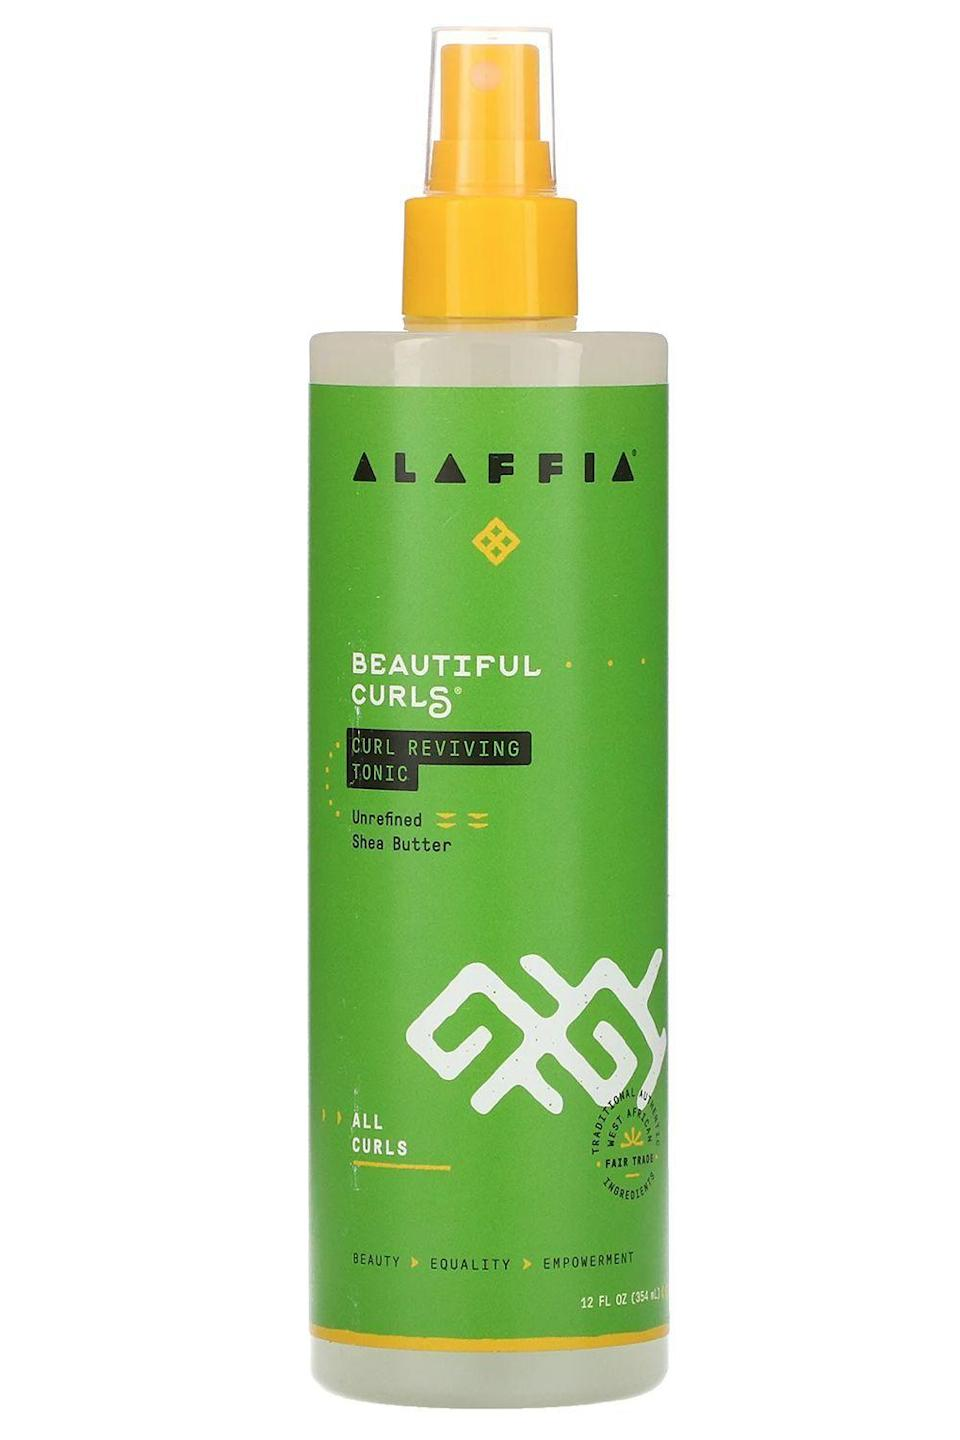 """<p>alaffia.com</p><p><strong>$12.99</strong></p><p><a href=""""https://www.alaffia.com/products/curl-reviving-tonic-12fl-oz"""" rel=""""nofollow noopener"""" target=""""_blank"""" data-ylk=""""slk:Shop Now"""" class=""""link rapid-noclick-resp"""">Shop Now</a></p><p>If you need to push off wash day a little bit longer and your <a href=""""https://www.cosmopolitan.com/style-beauty/beauty/news/a34577/curly-hair-hacks/"""" rel=""""nofollow noopener"""" target=""""_blank"""" data-ylk=""""slk:curls"""" class=""""link rapid-noclick-resp"""">curls</a> are dying of thirst, hit them with a spritz of this Black-owned hair product. The <strong>conditioning combo of shea butter and aloe vera brings bounce,</strong> adds <em>just </em>the right amount of hold to keep your curls at attention, and leaves your hair with a refreshing scent.</p>"""